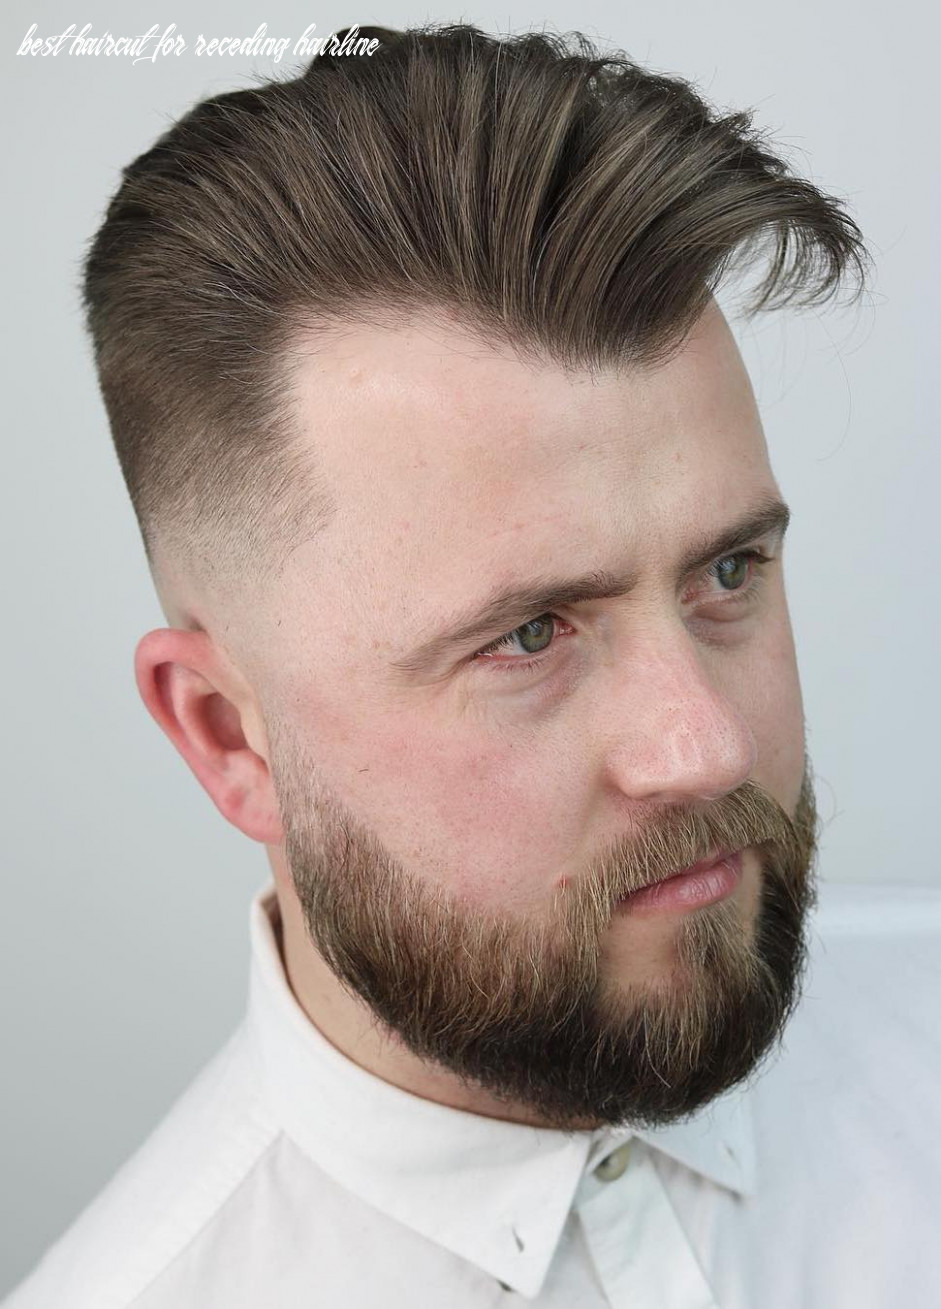 8 Best Haircut For Receding Hairline - Undercut Hairstyle